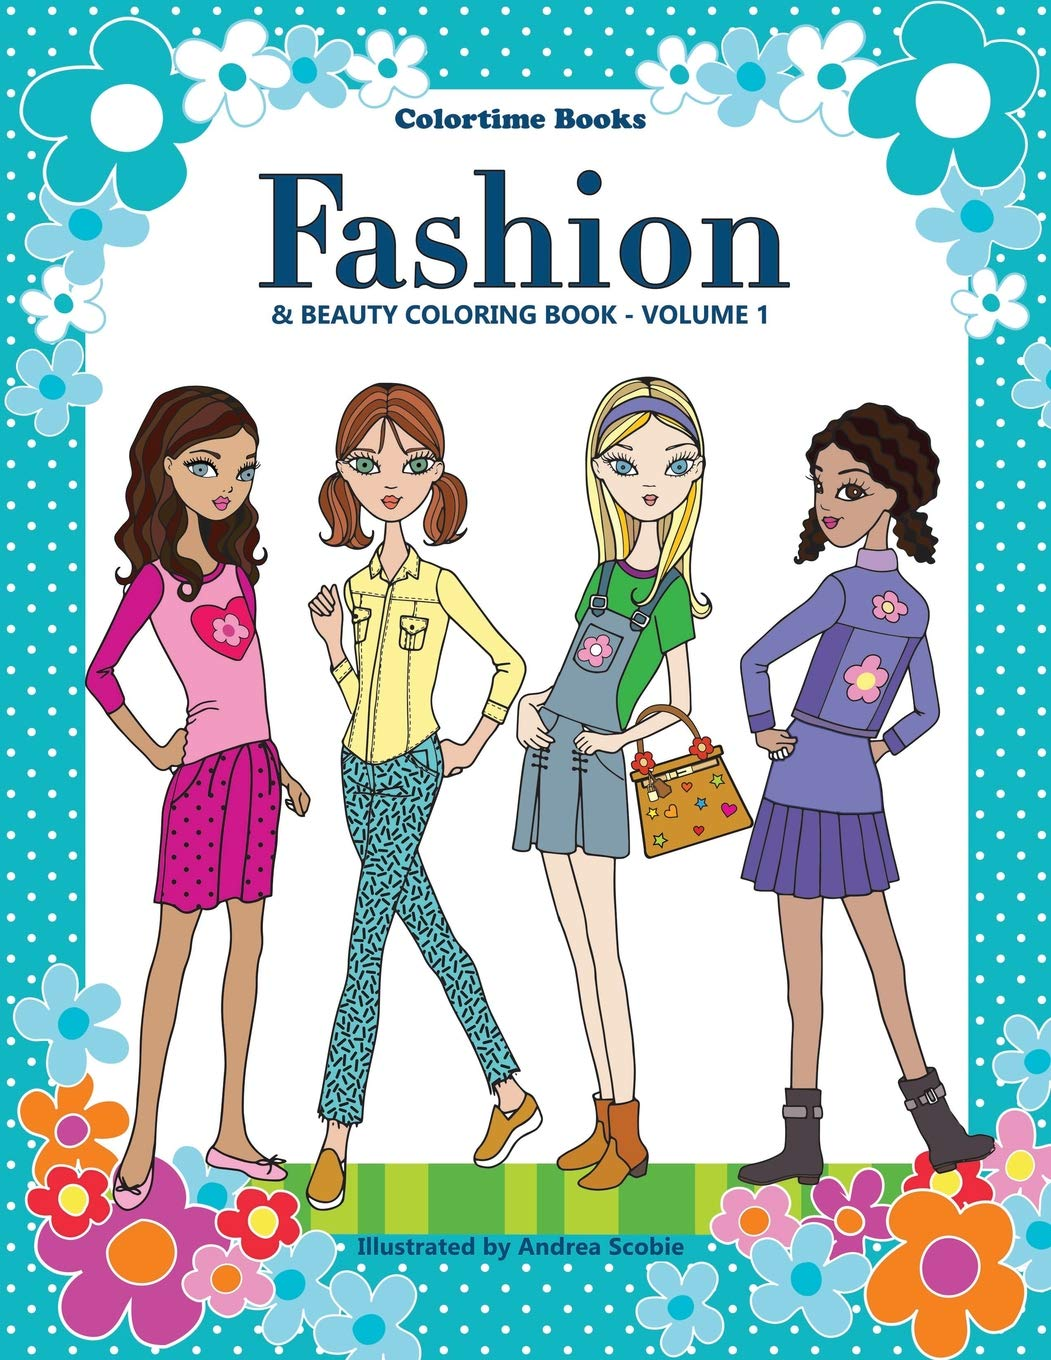 - Colortimebooks Fashion & Beauty Coloring Book: Scobie, Andrea